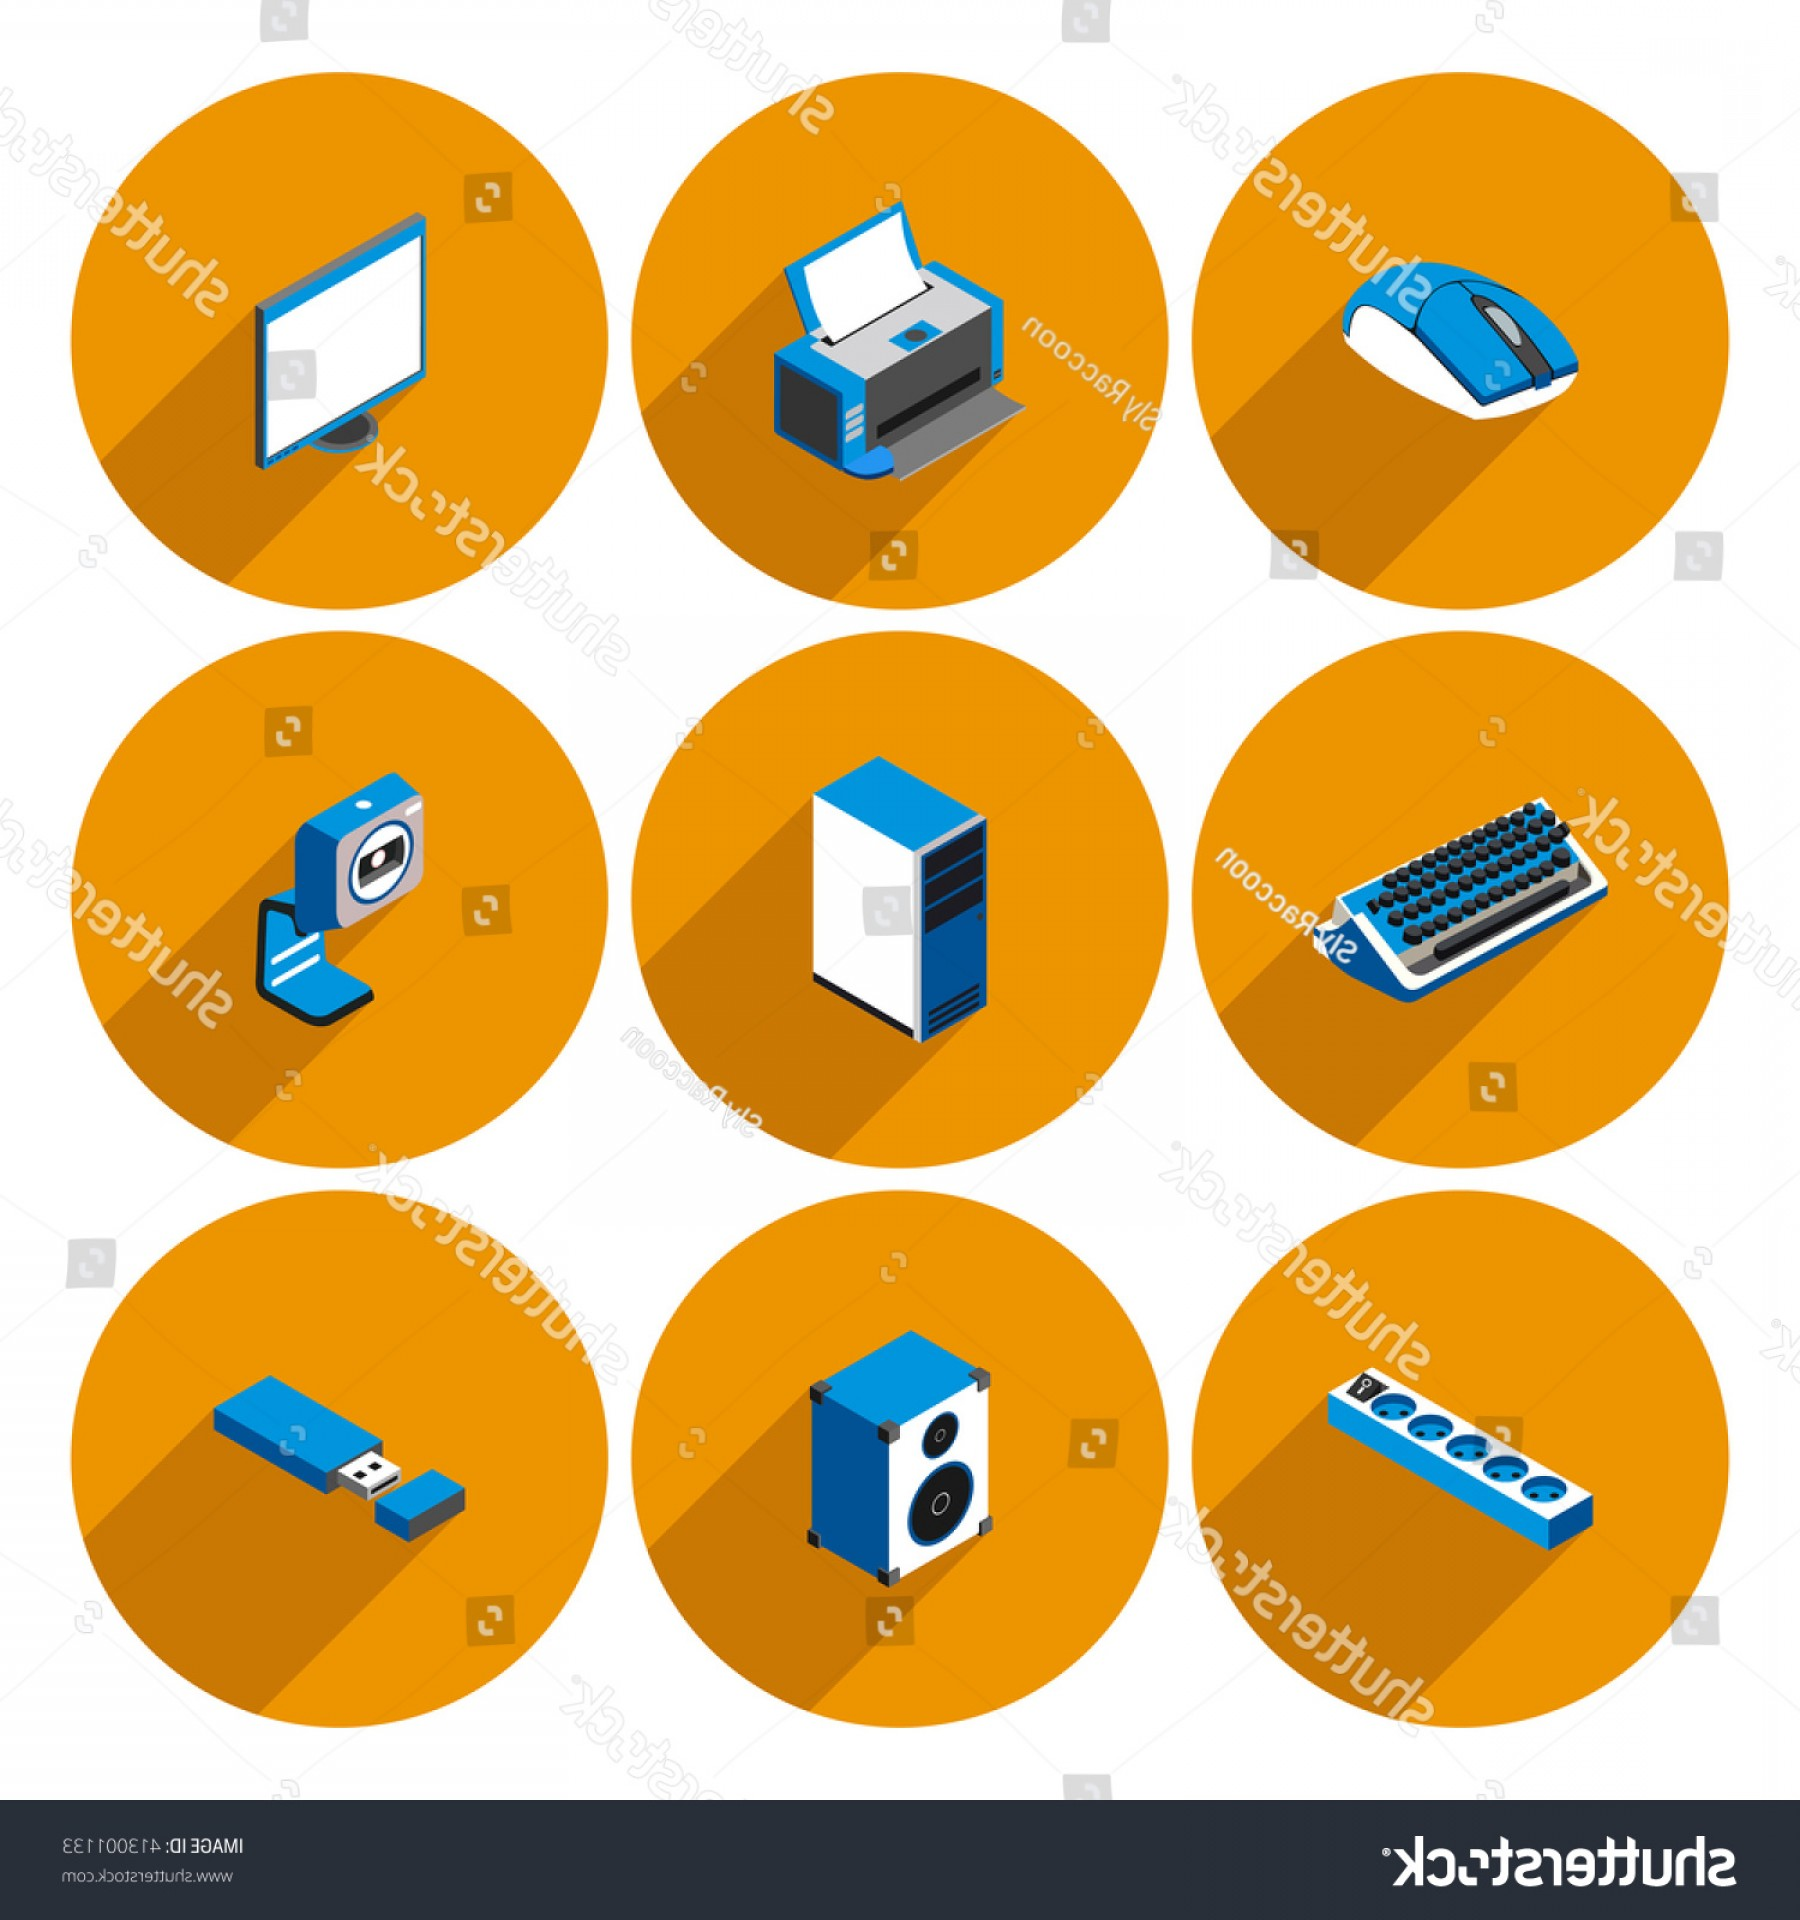 Computer Vector Icon Flat: Flat Icons Accessories Personal Computer Vector